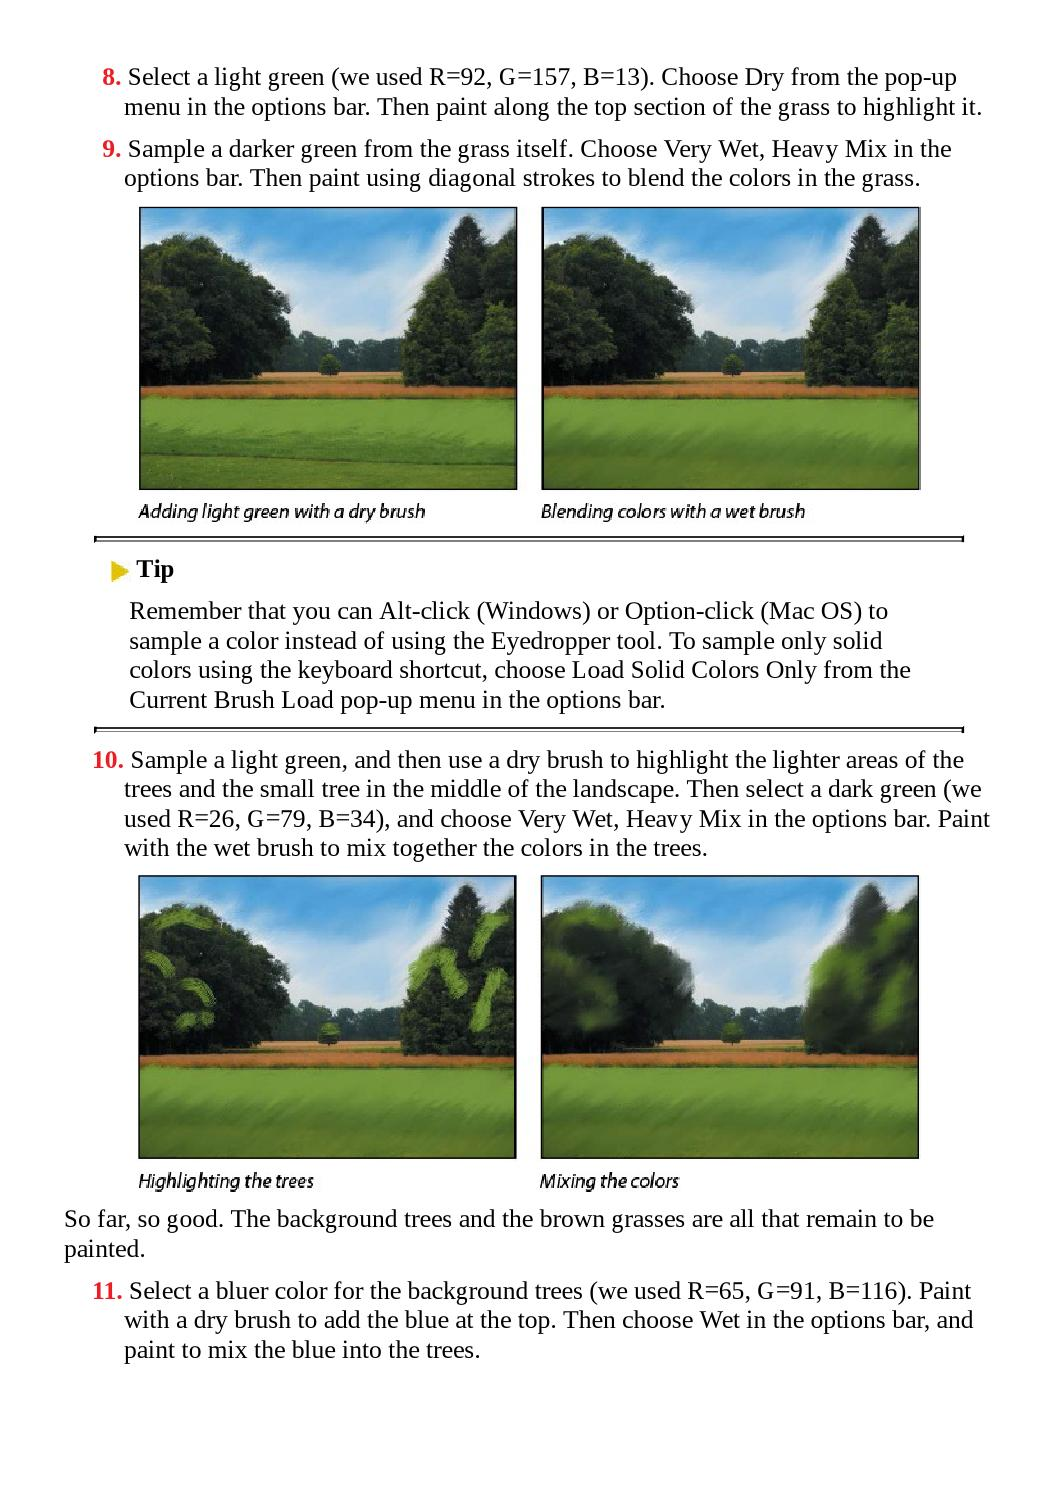 Adobe photoshop cc classroom in a book 2015 by Andrés Arenas - issuu